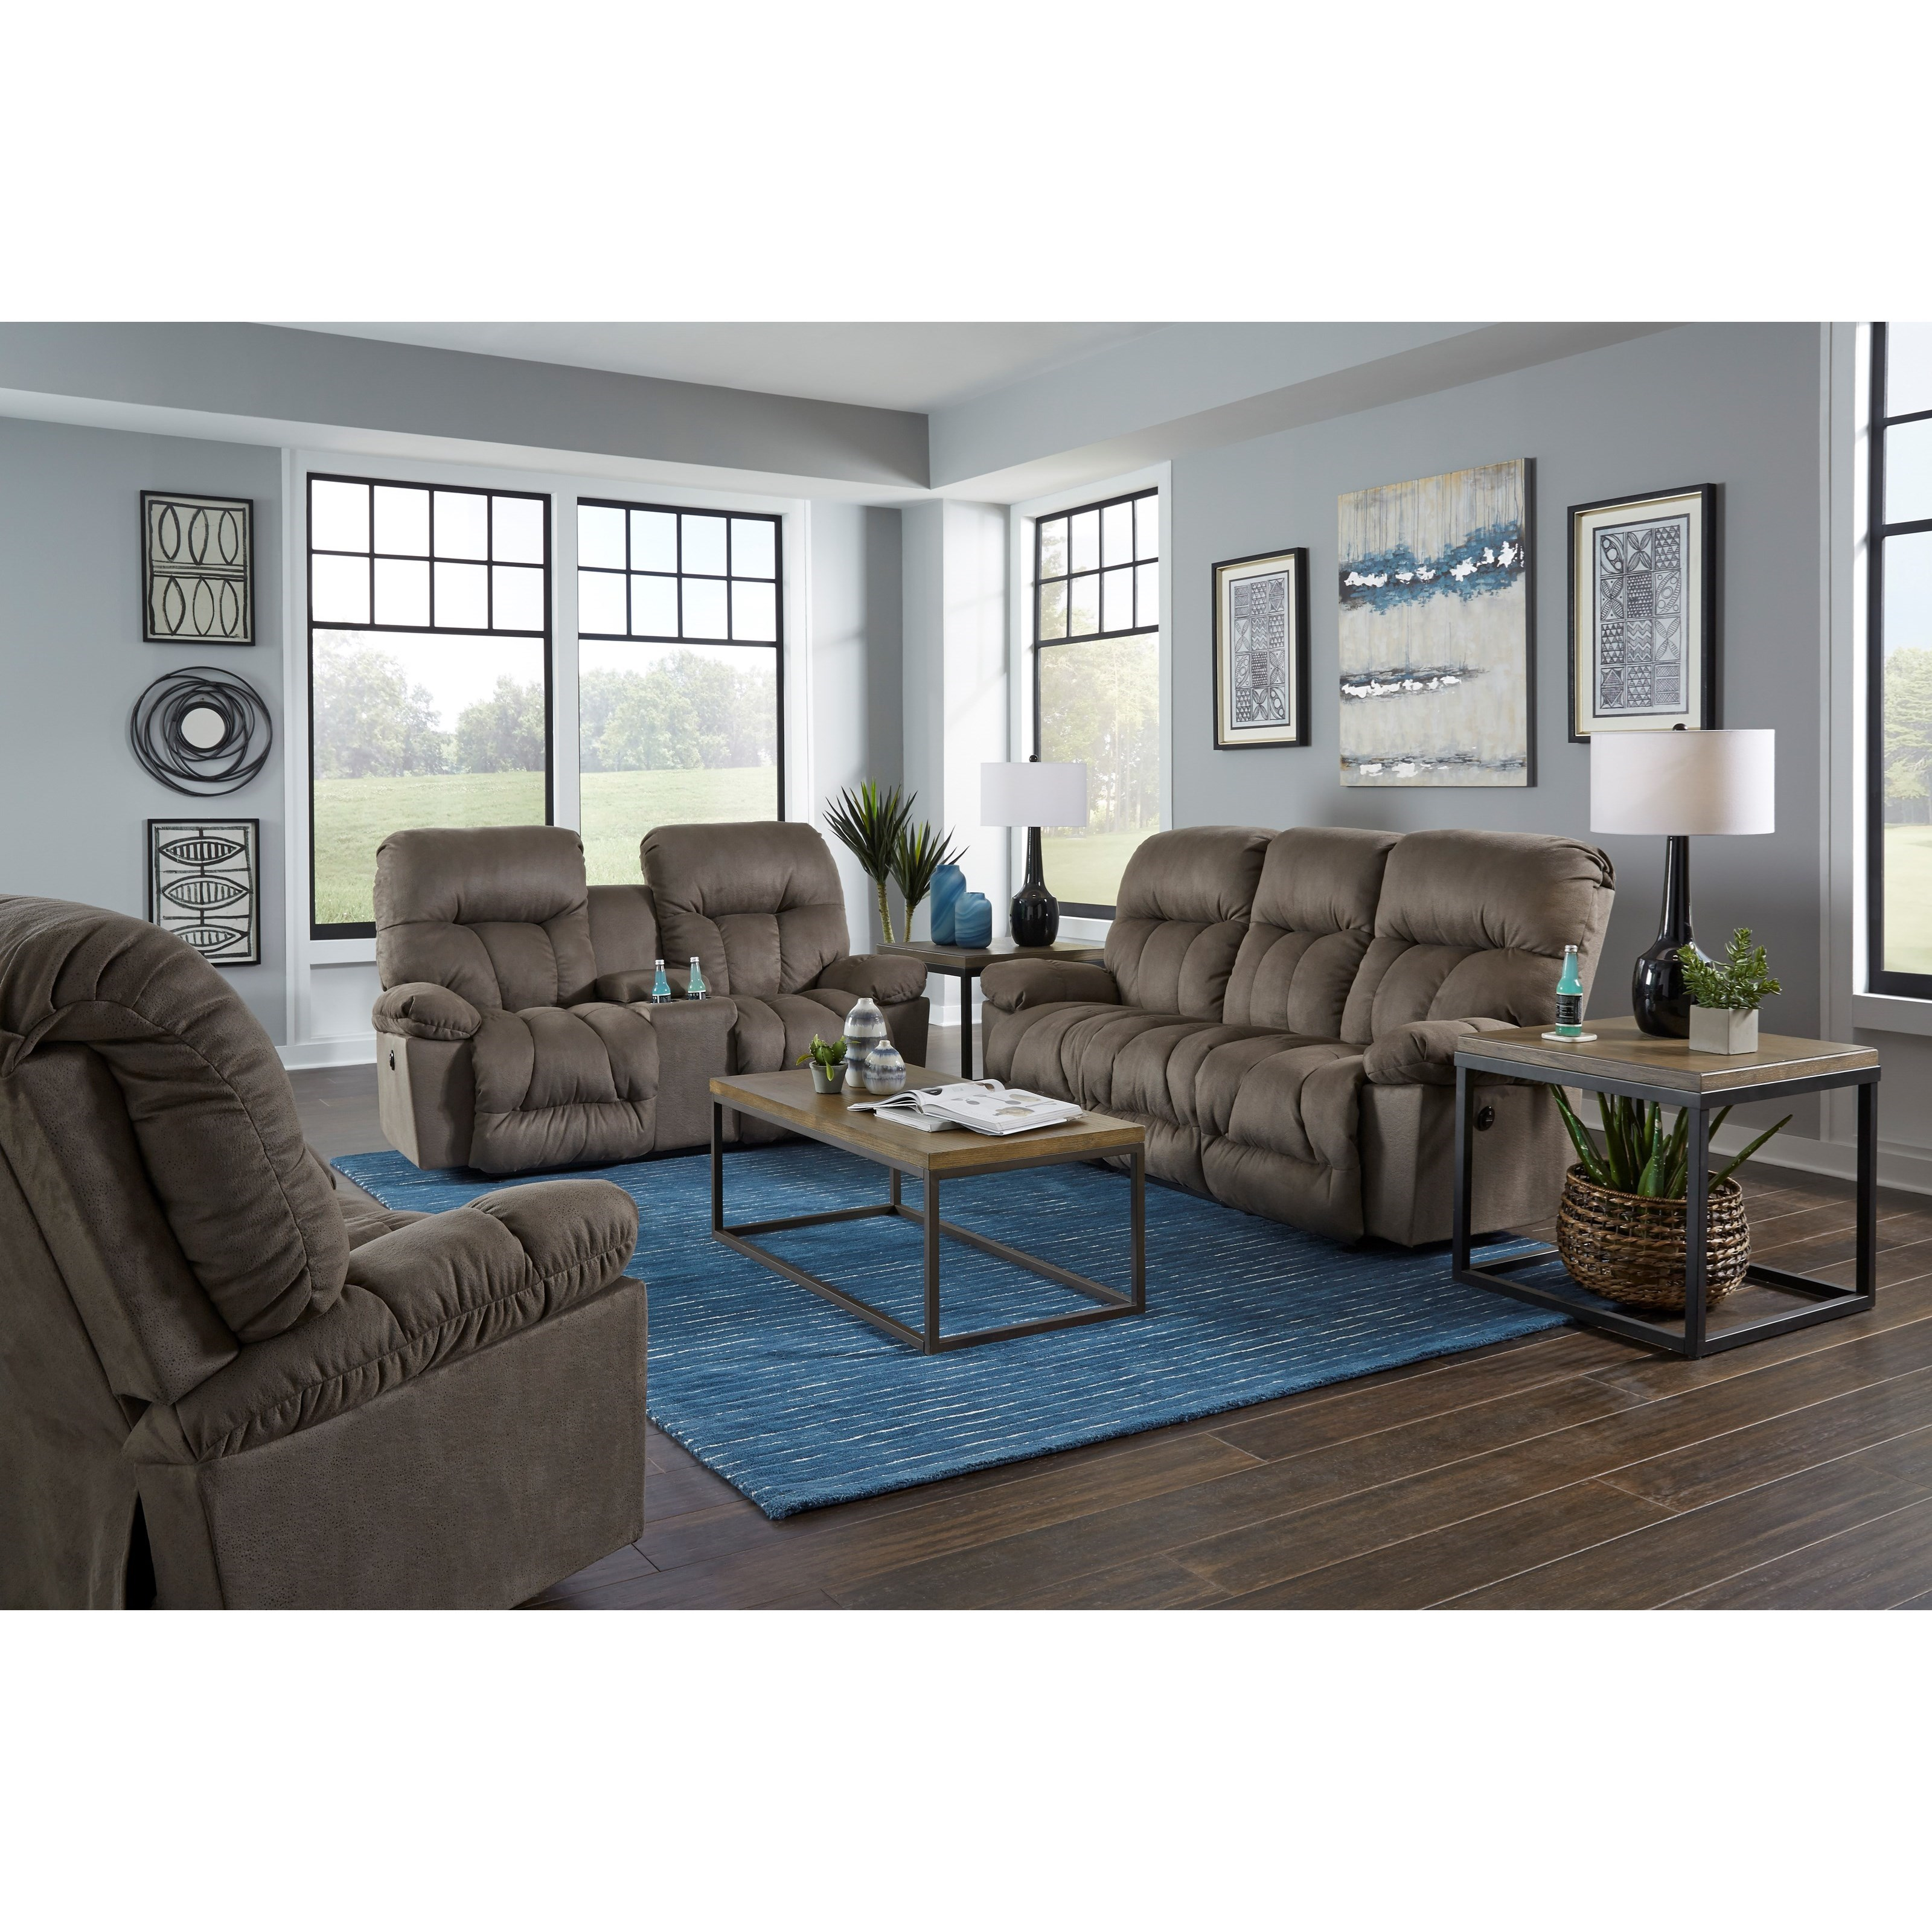 Retreat Reclining Living Room Group by Best Home Furnishings at Best Home Furnishings